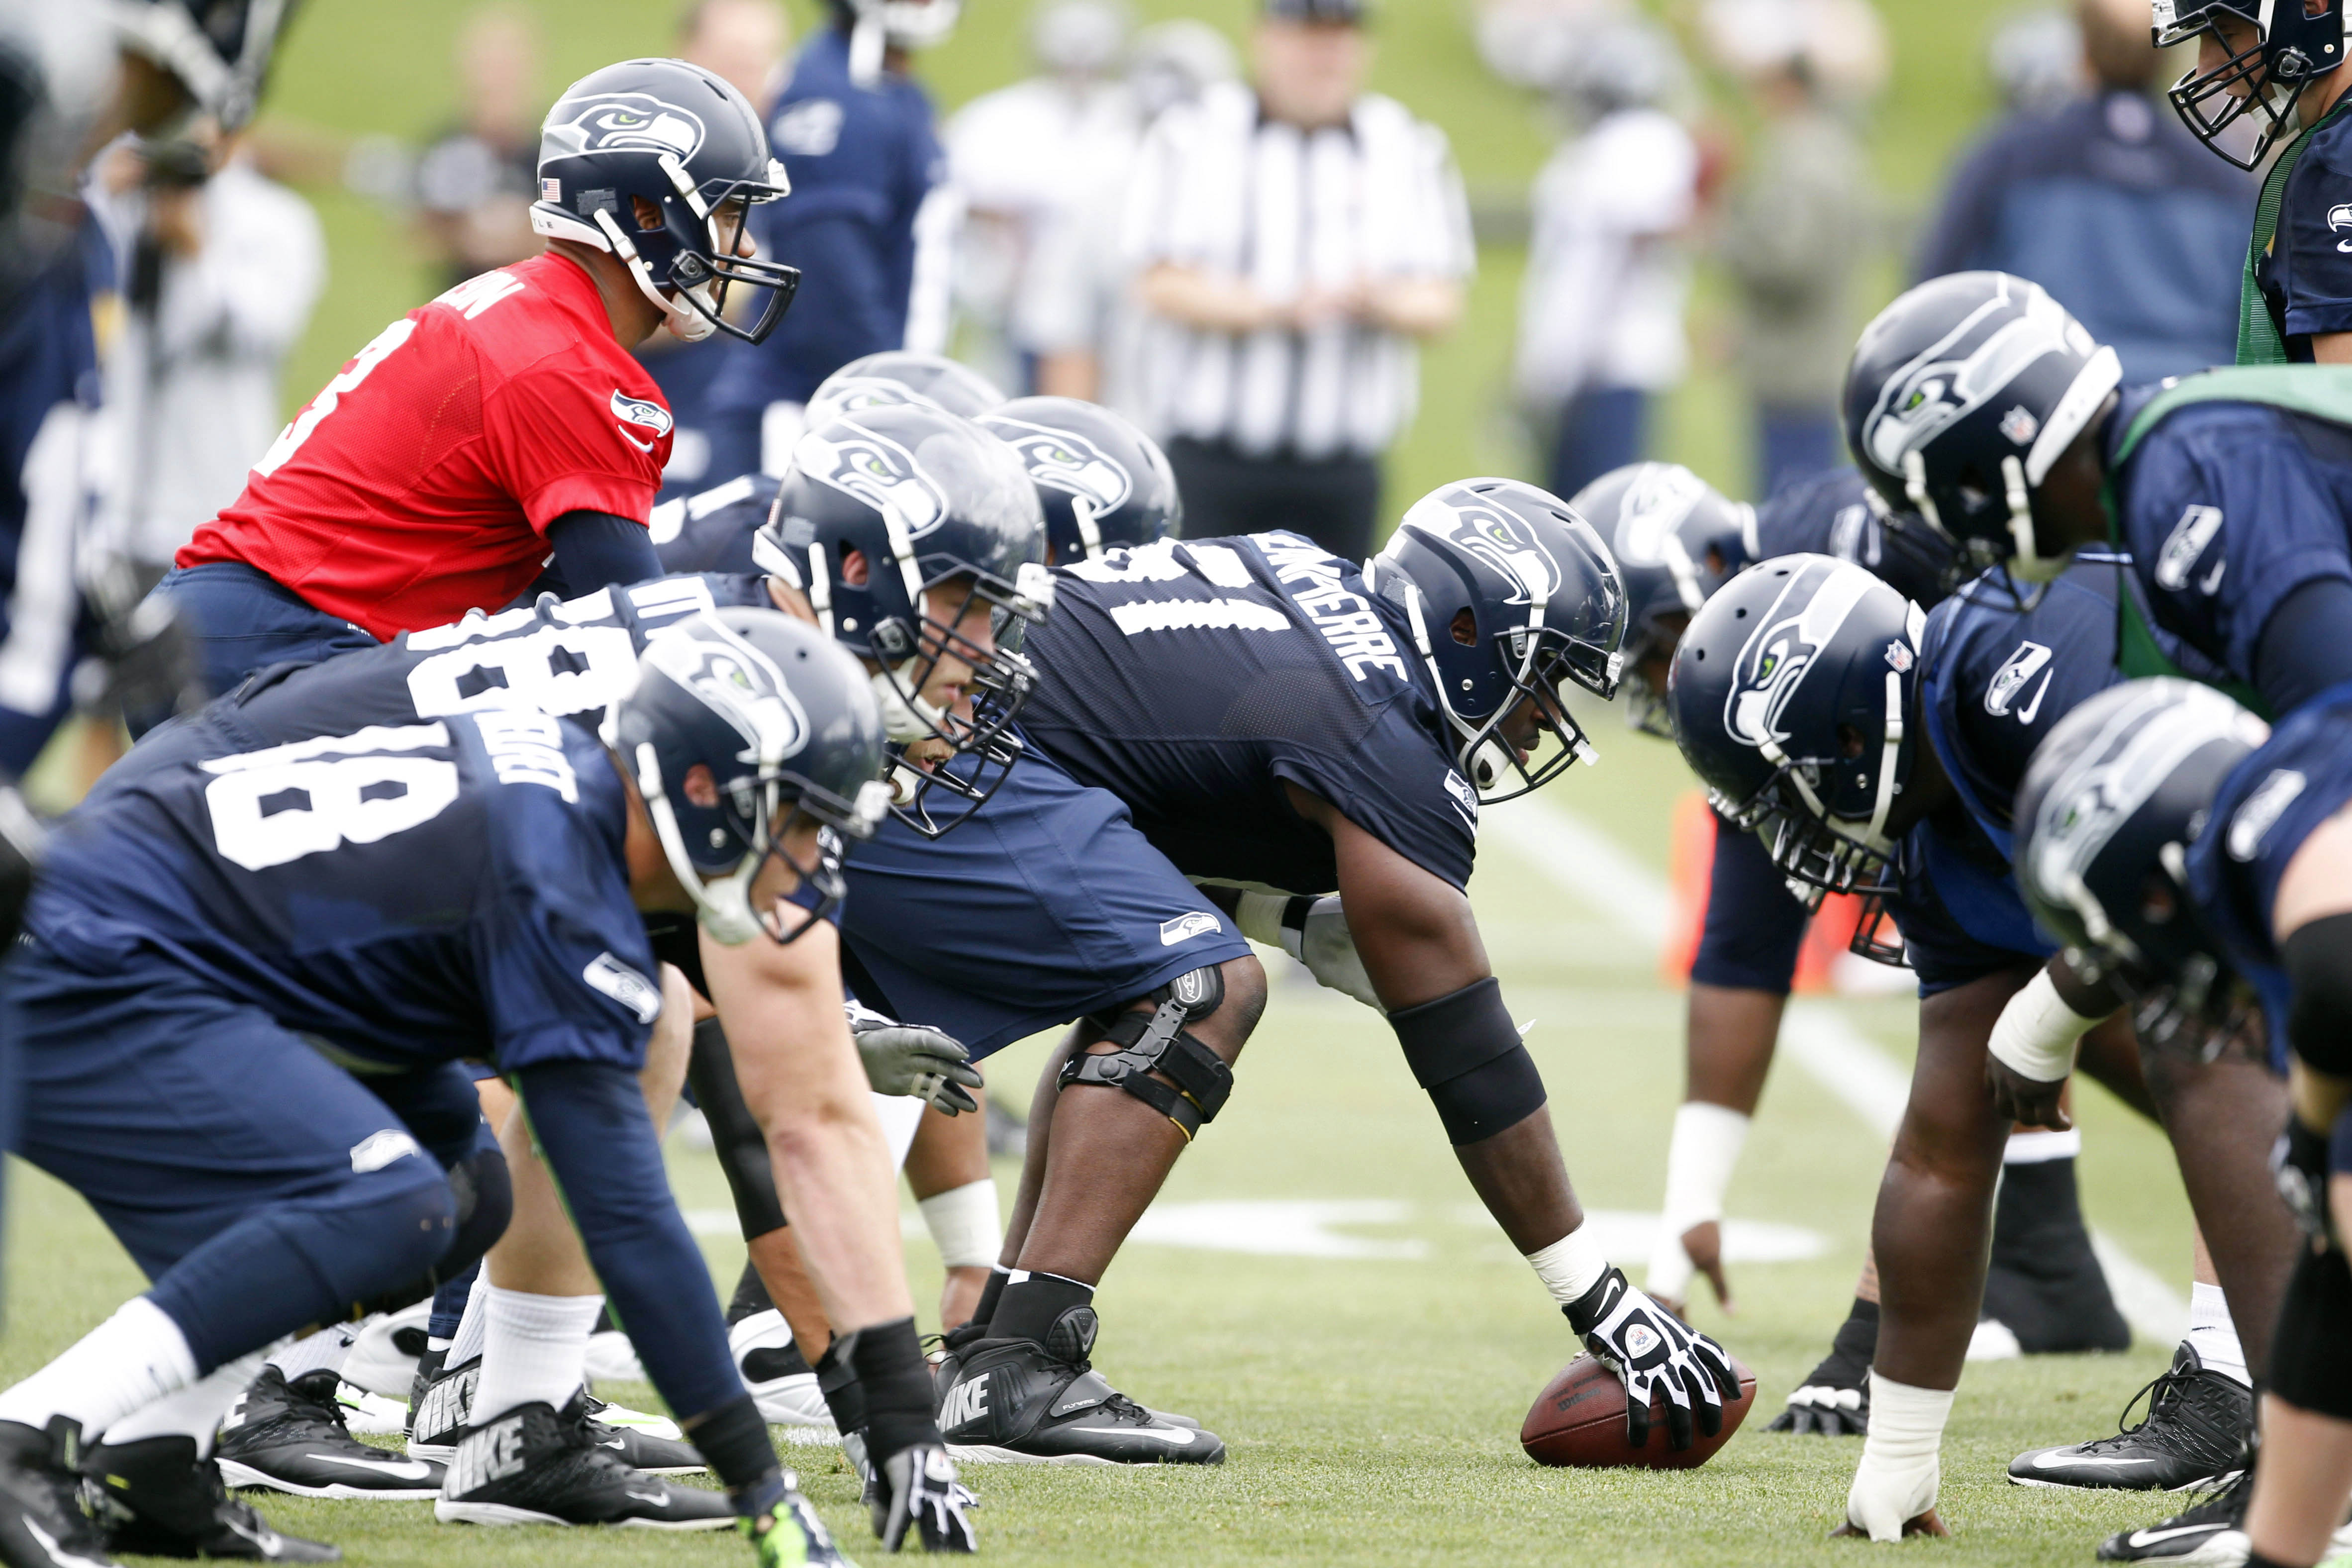 Jun 17, 2014; Renton, WA, USA; Seattle Seahawks quarterback Russell Wilson (3) stands over center for a scrimmage play during minicamp at the Virginia Mason Athletic Center. Mandatory Credit: Joe Nicholson-USA TODAY Sports